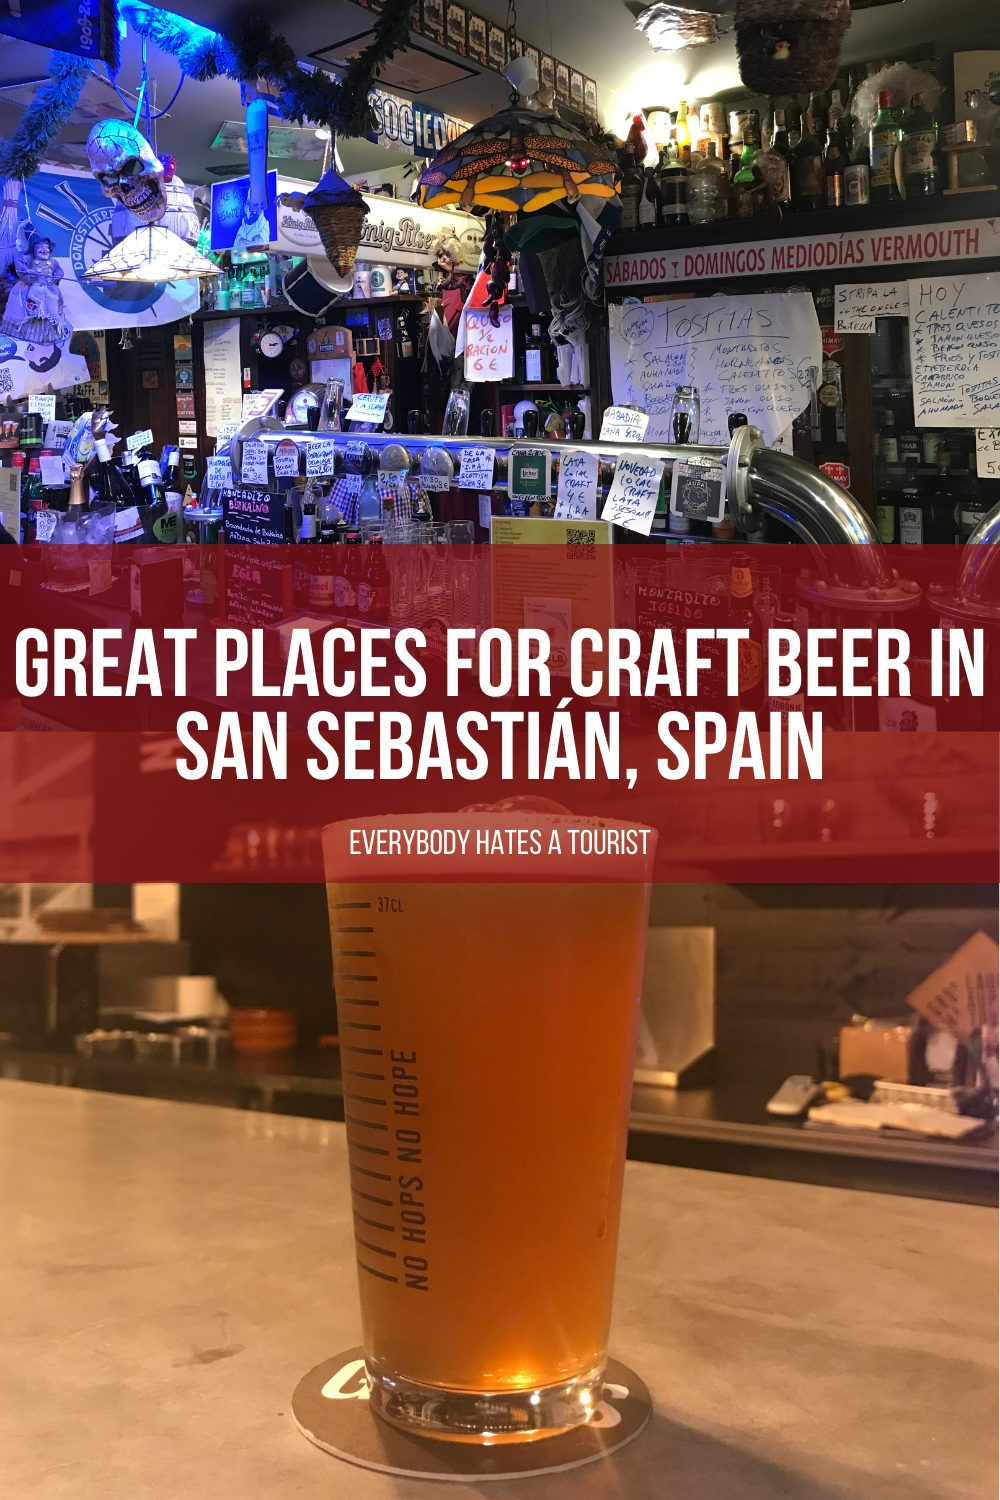 Great places for craft beer in San Sebastián Spain - 12 great places for craft beer in San Sebastián, Spain